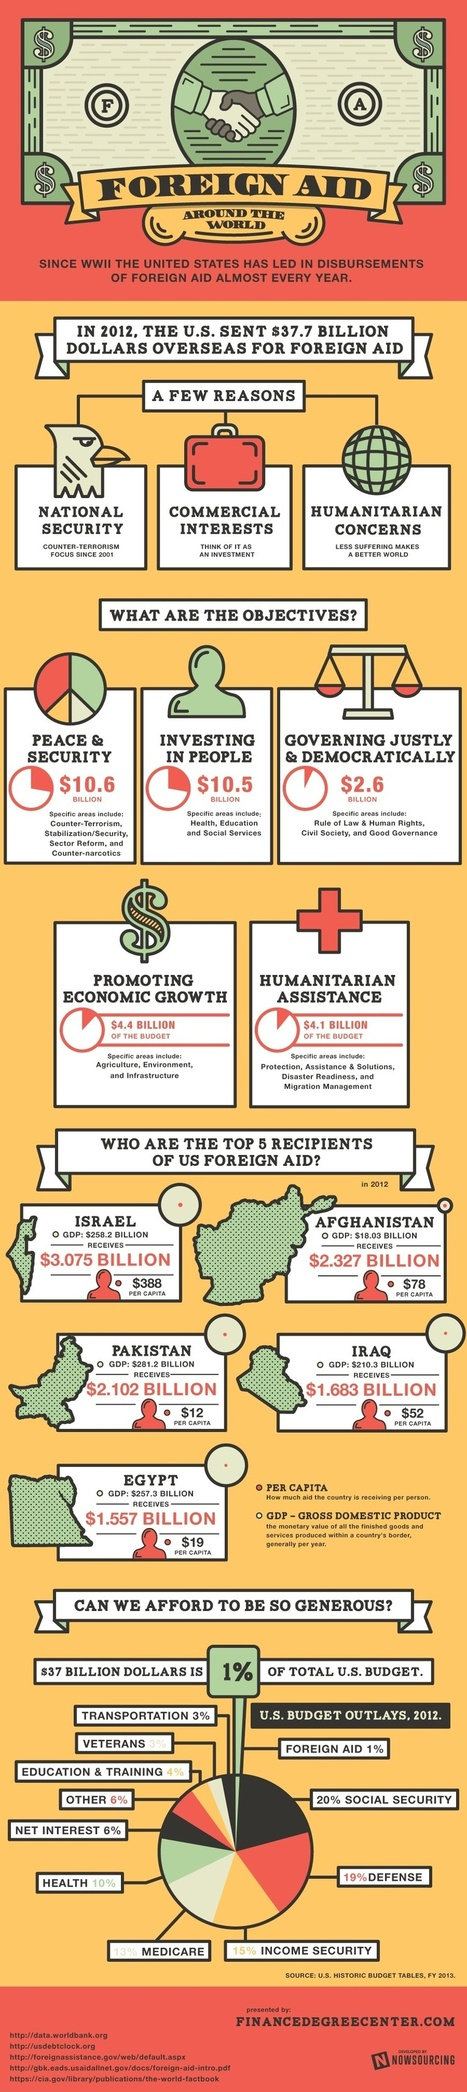 U.S. Foreign Aid Around the World [Infographic] | Gov & Law | Scoop.it